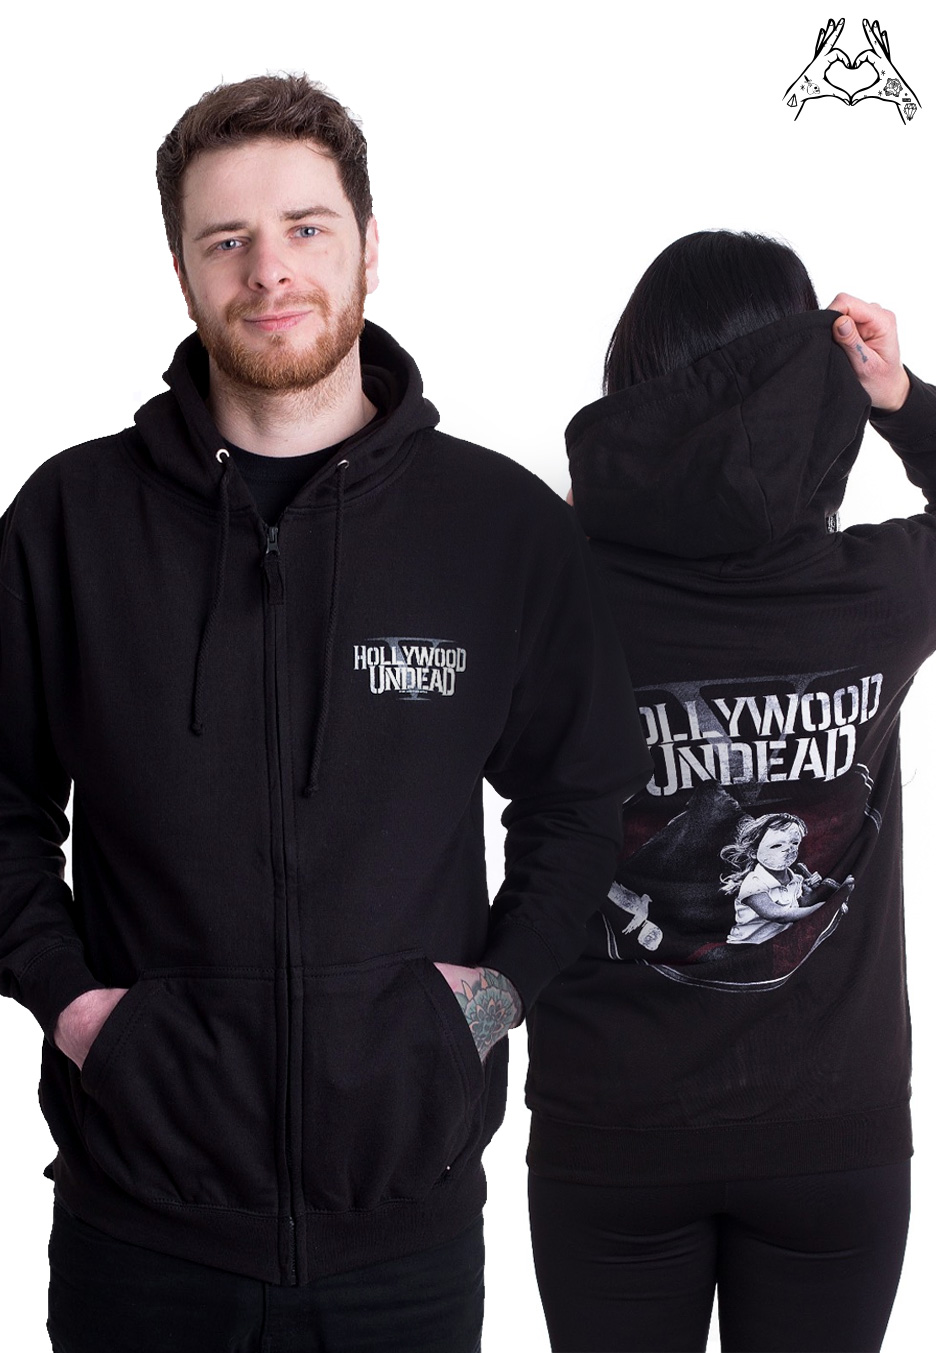 Specials Merchandise Streetwear And Tickets Impericoncom Worldwide